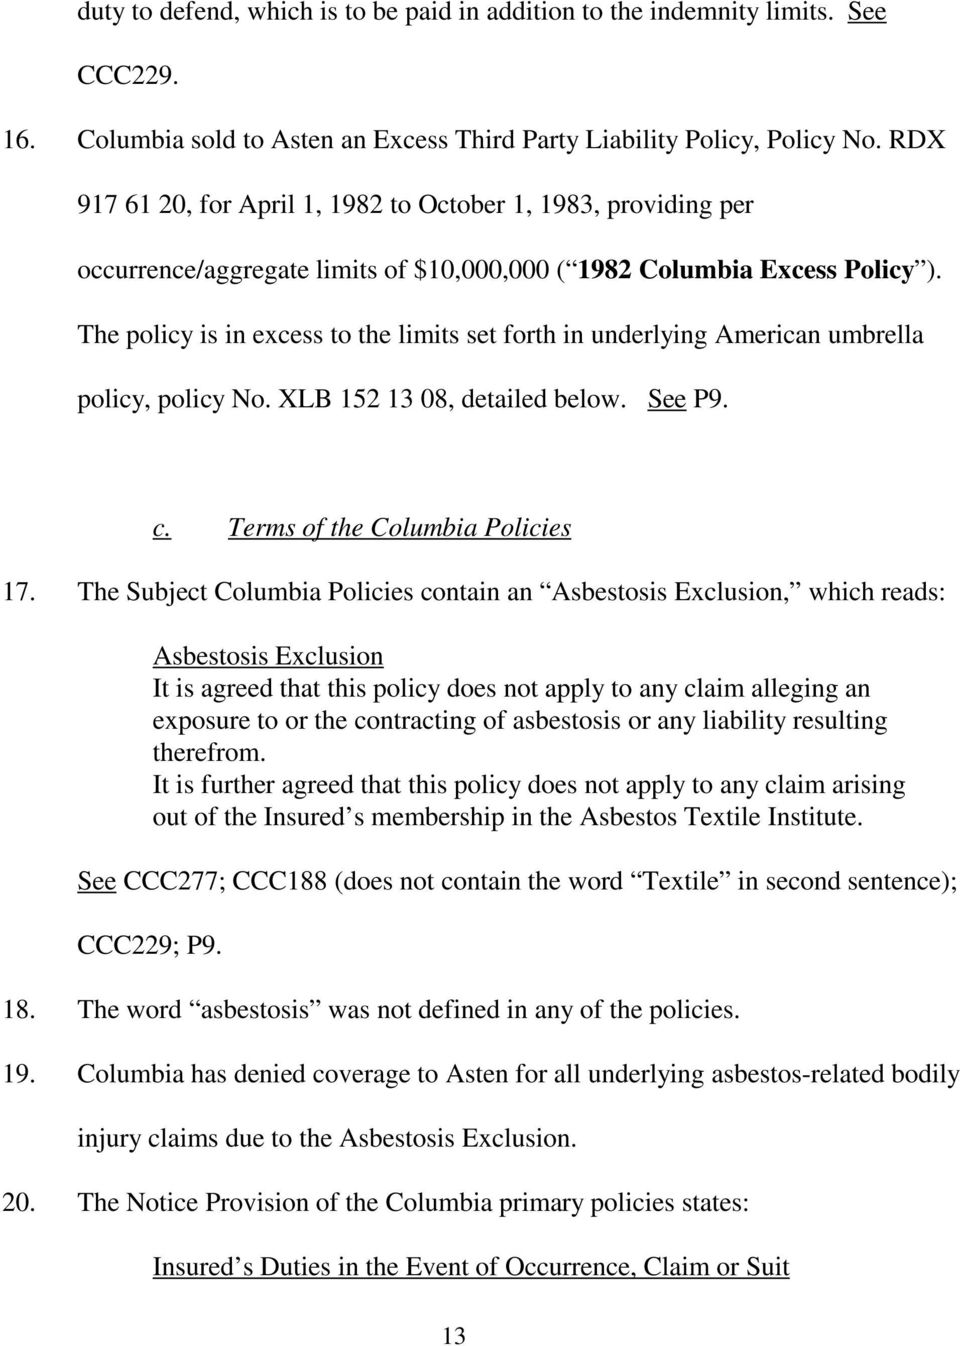 The policy is in excess to the limits set forth in underlying American umbrella policy, policy No. XLB 152 13 08, detailed below. See P9. c. Terms of the Columbia Policies 17.